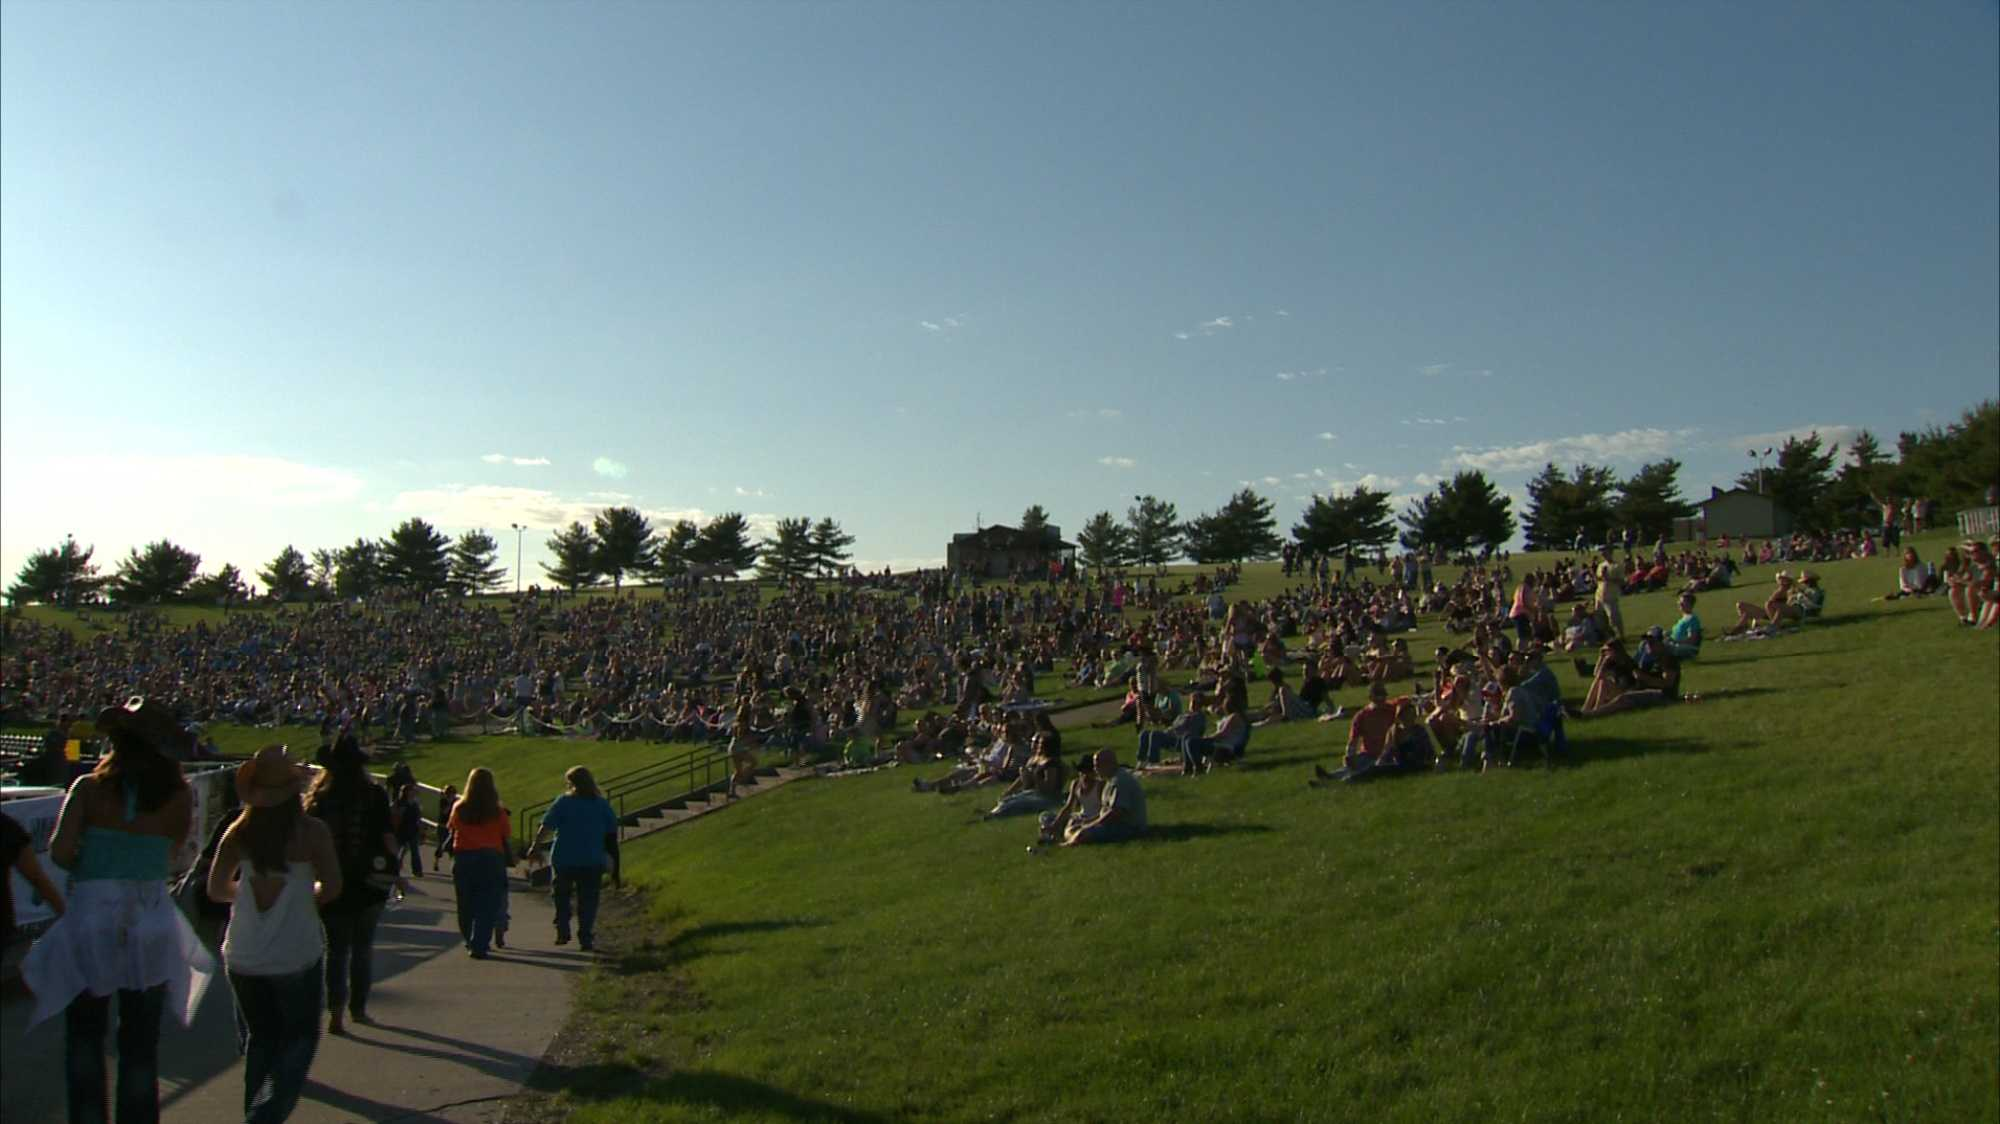 Fans can buy seats or spread out on the lawn for First Niagara Pavilion concerts.